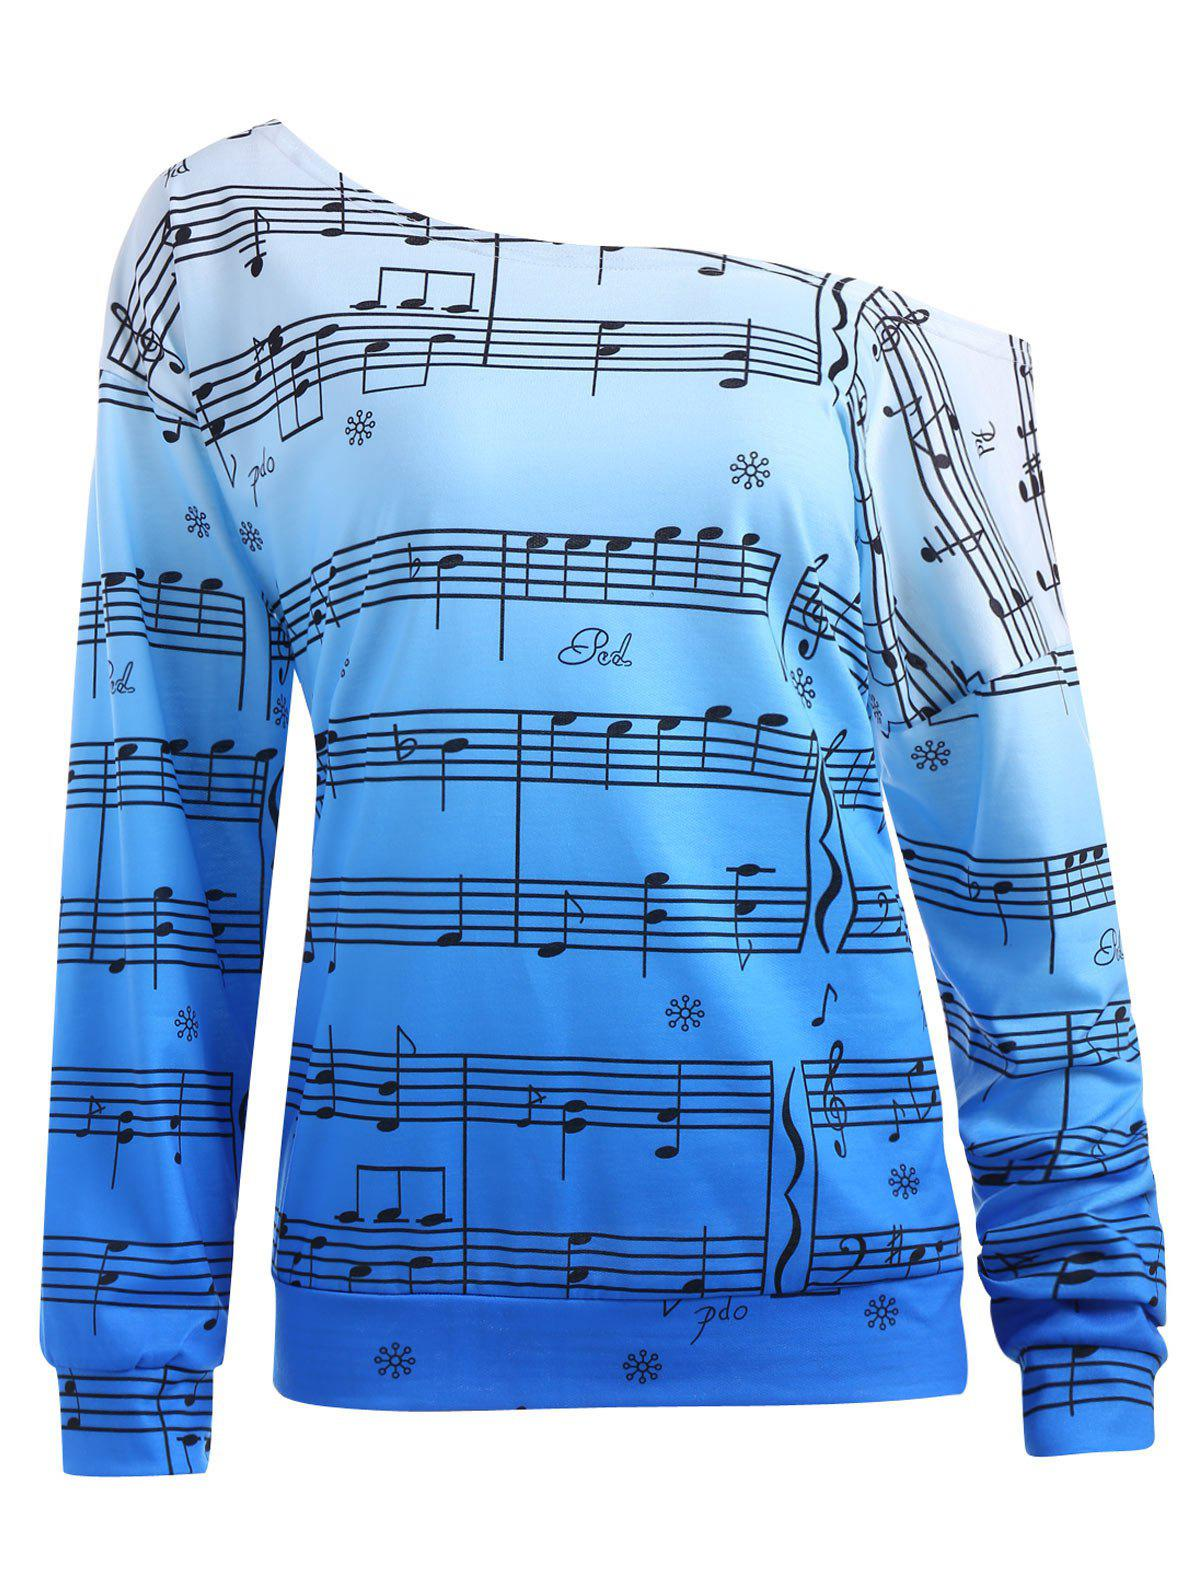 Plus Size Music Note Print Skew Neck SweatshirtWOMEN<br><br>Size: XL; Color: BLUE; Material: Cotton Blend,Polyester; Shirt Length: Regular; Sleeve Length: Full; Style: Fashion; Pattern Style: Ombre,Print; Season: Fall,Winter; Weight: 0.3200kg; Package Contents: 1 x Sweatshirt;